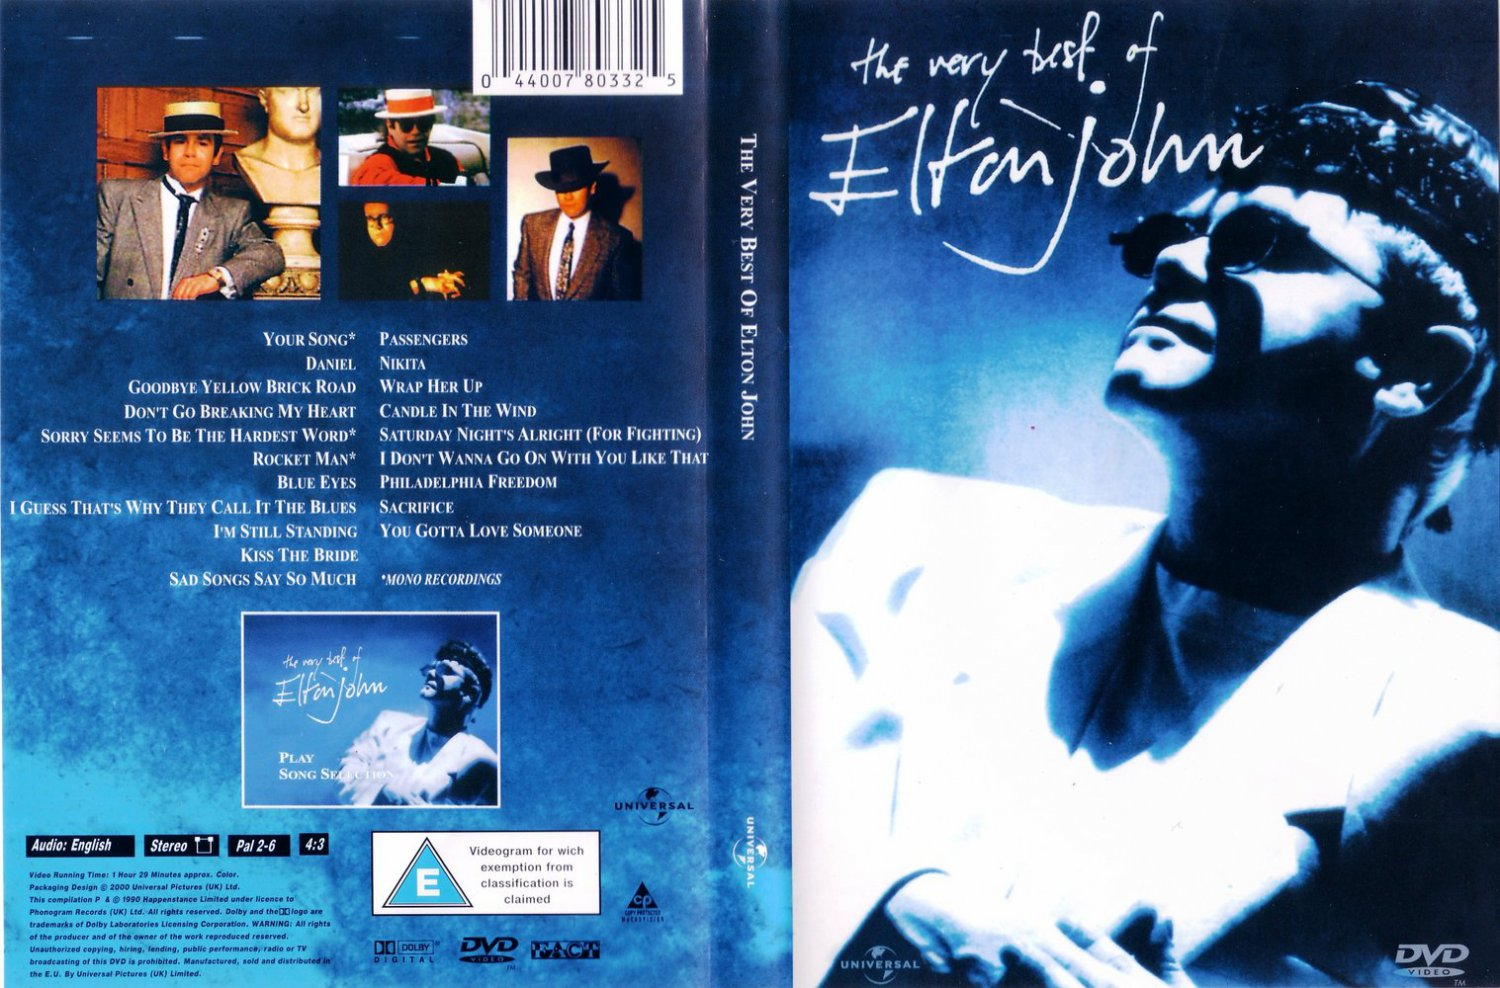 Elton John - The Very Best Of Elton John  DVD